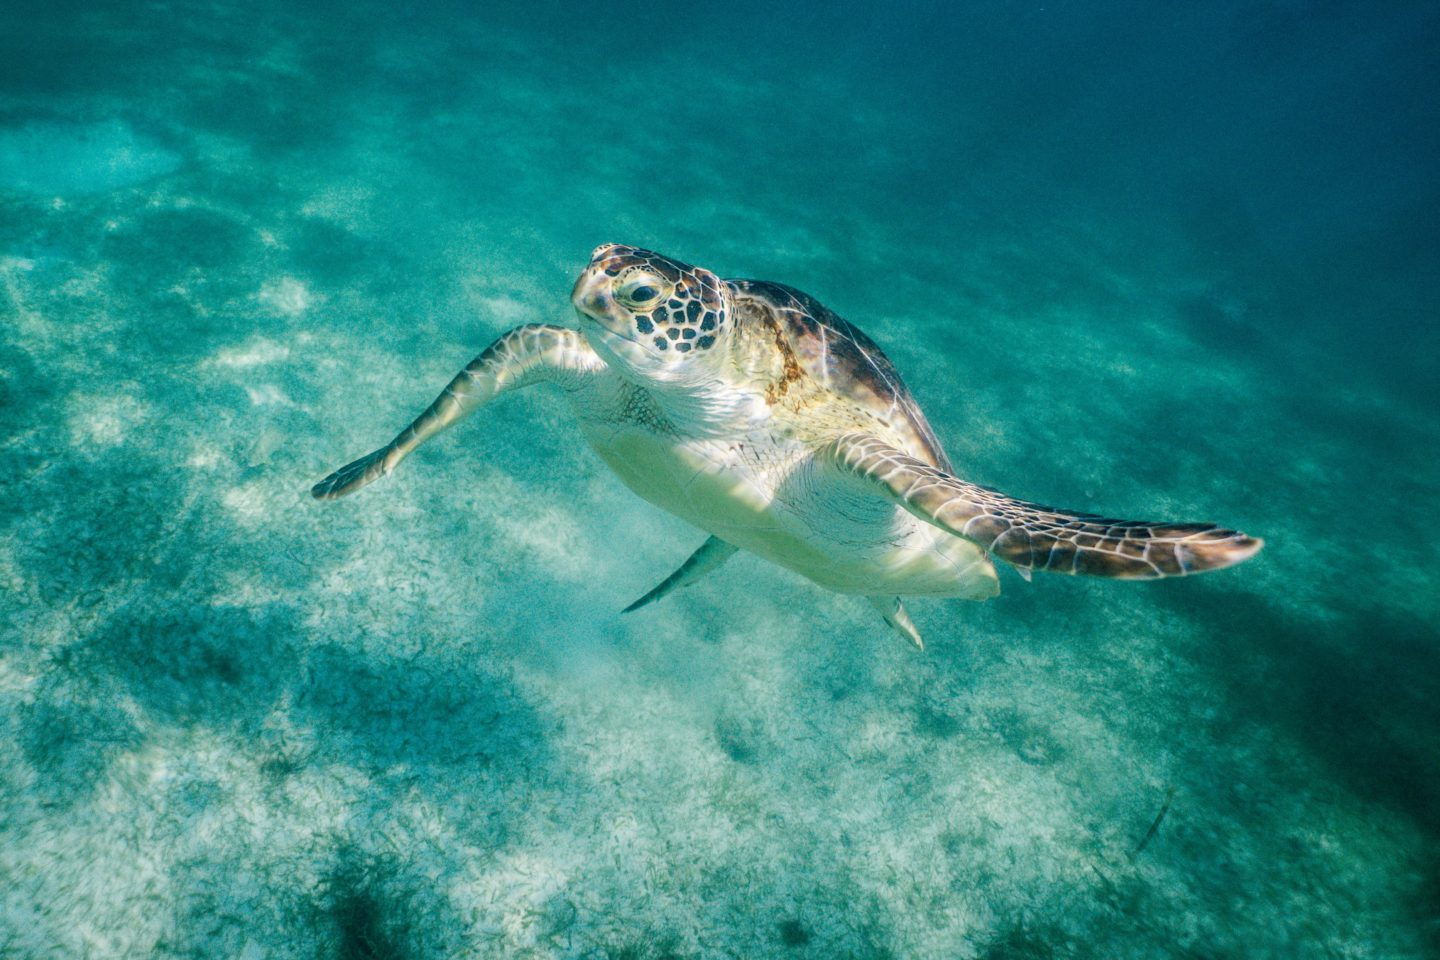 Cozumel All-Inclusive Resorts: Scuba dive with turtles, just like this guy!